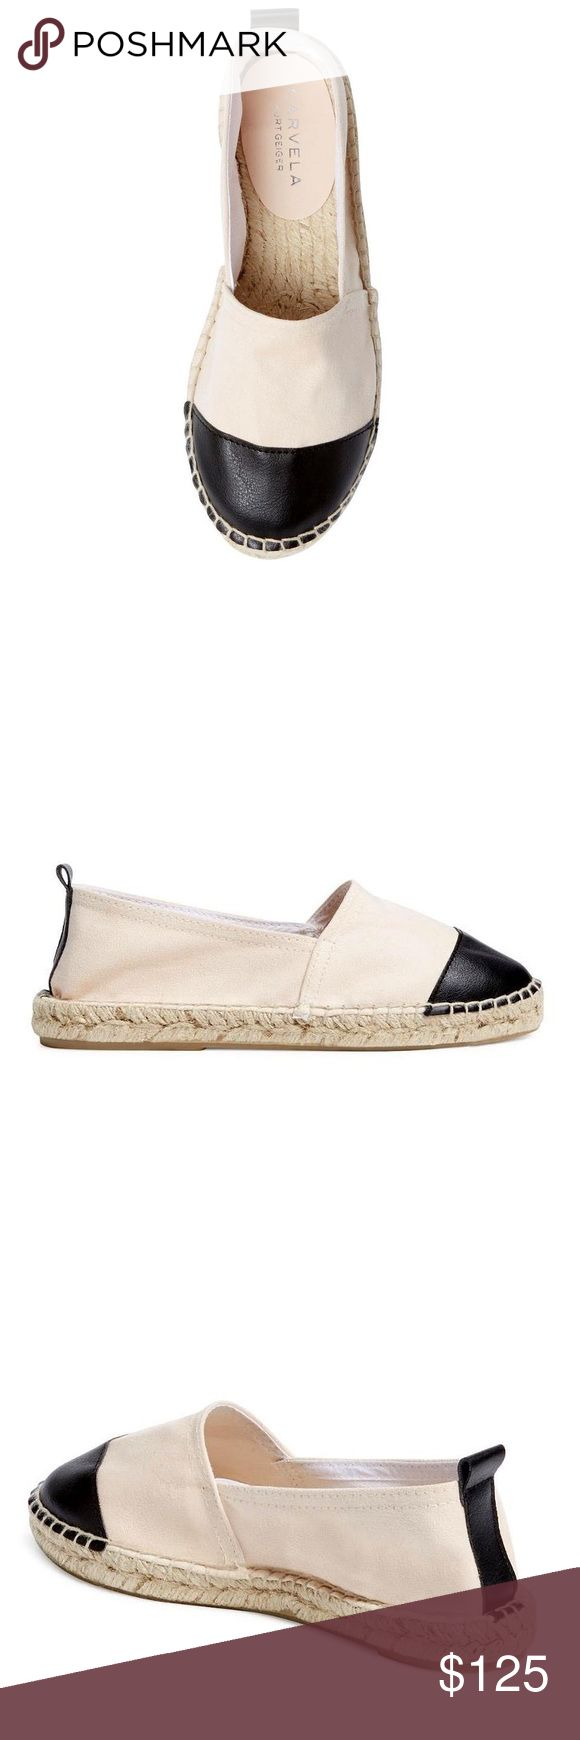 NEW Carvela Kurt Geiger Leather Ballet Espadrille Features: * Leather/canvas upper * Round toe * Pull-tab at back * Jute insole and outsole * Made in Spain  Note: These run very small. Size 41 fits like a US 7.5 Carvela Kurt Geiger Shoes Espadrilles